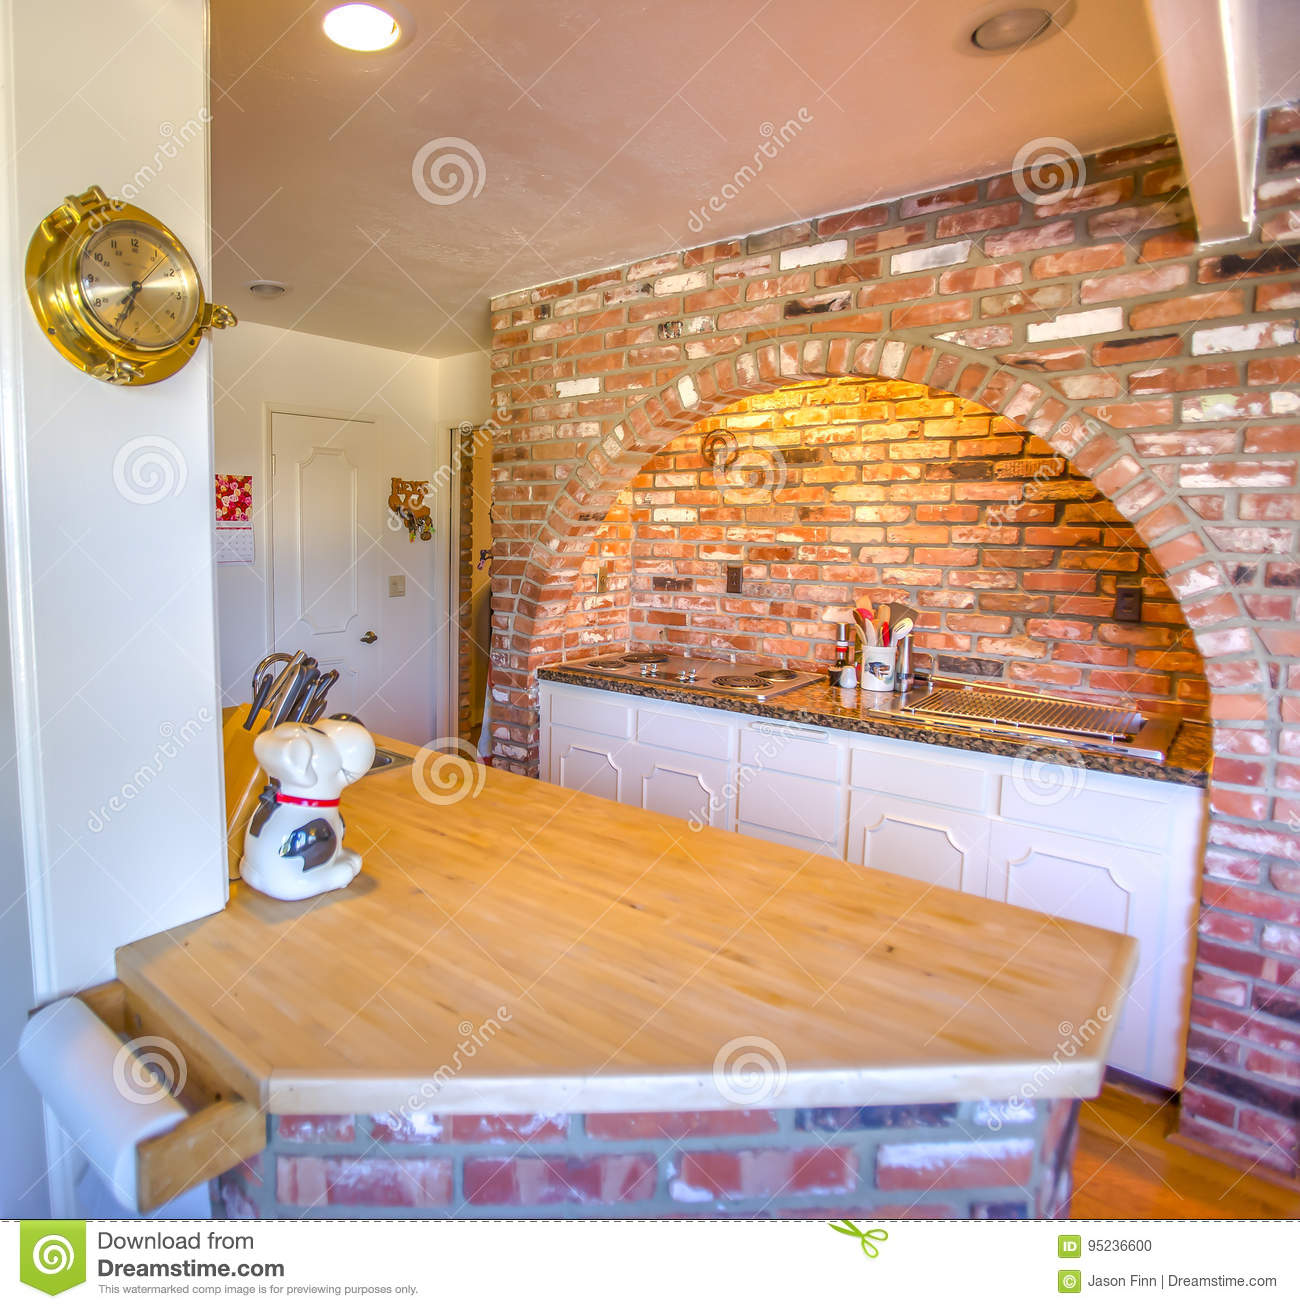 - Brick Backsplash And Arch With Stove In Ranch Style Home In